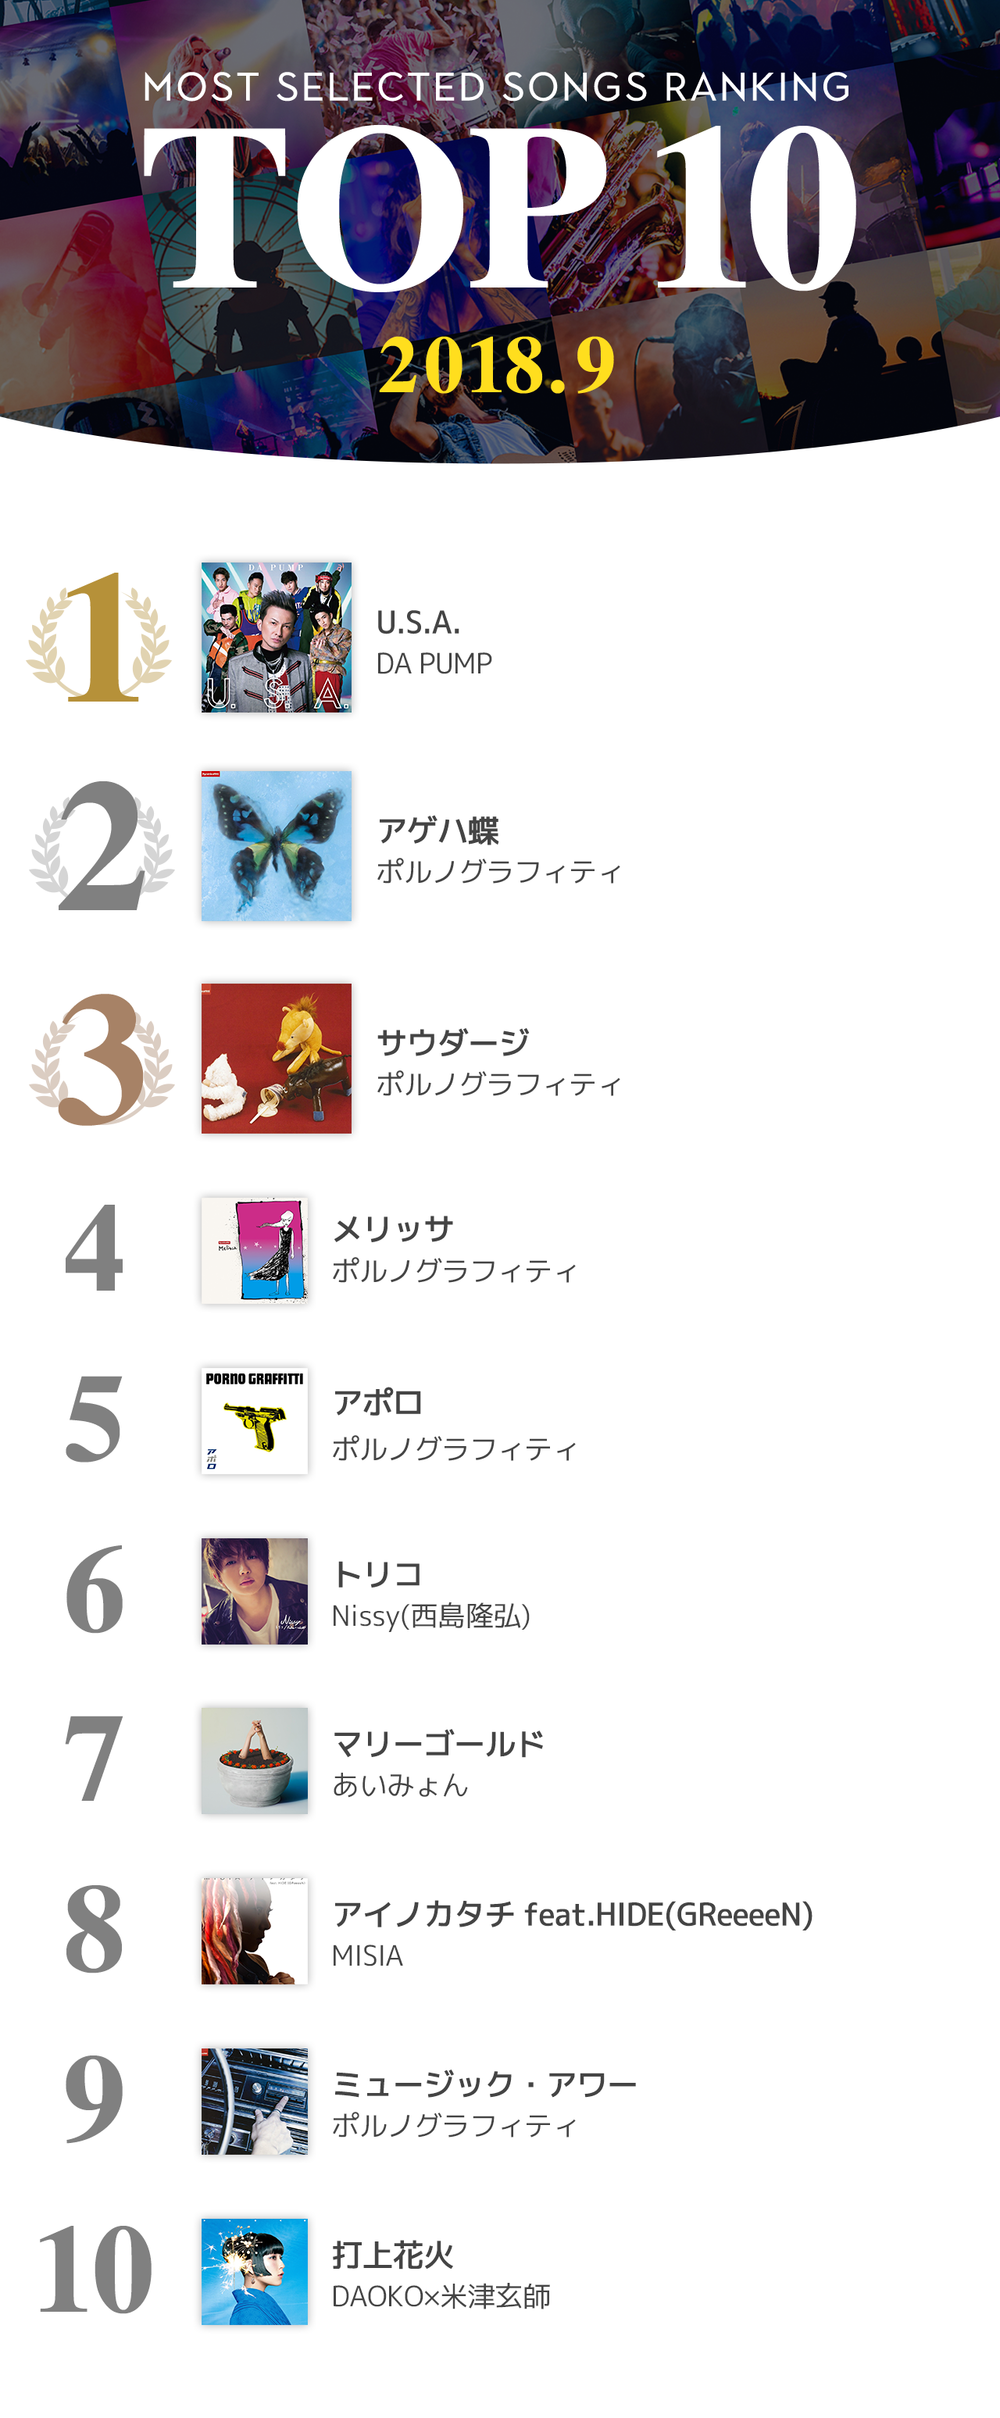 1005_TOP10_Ranking_News.png